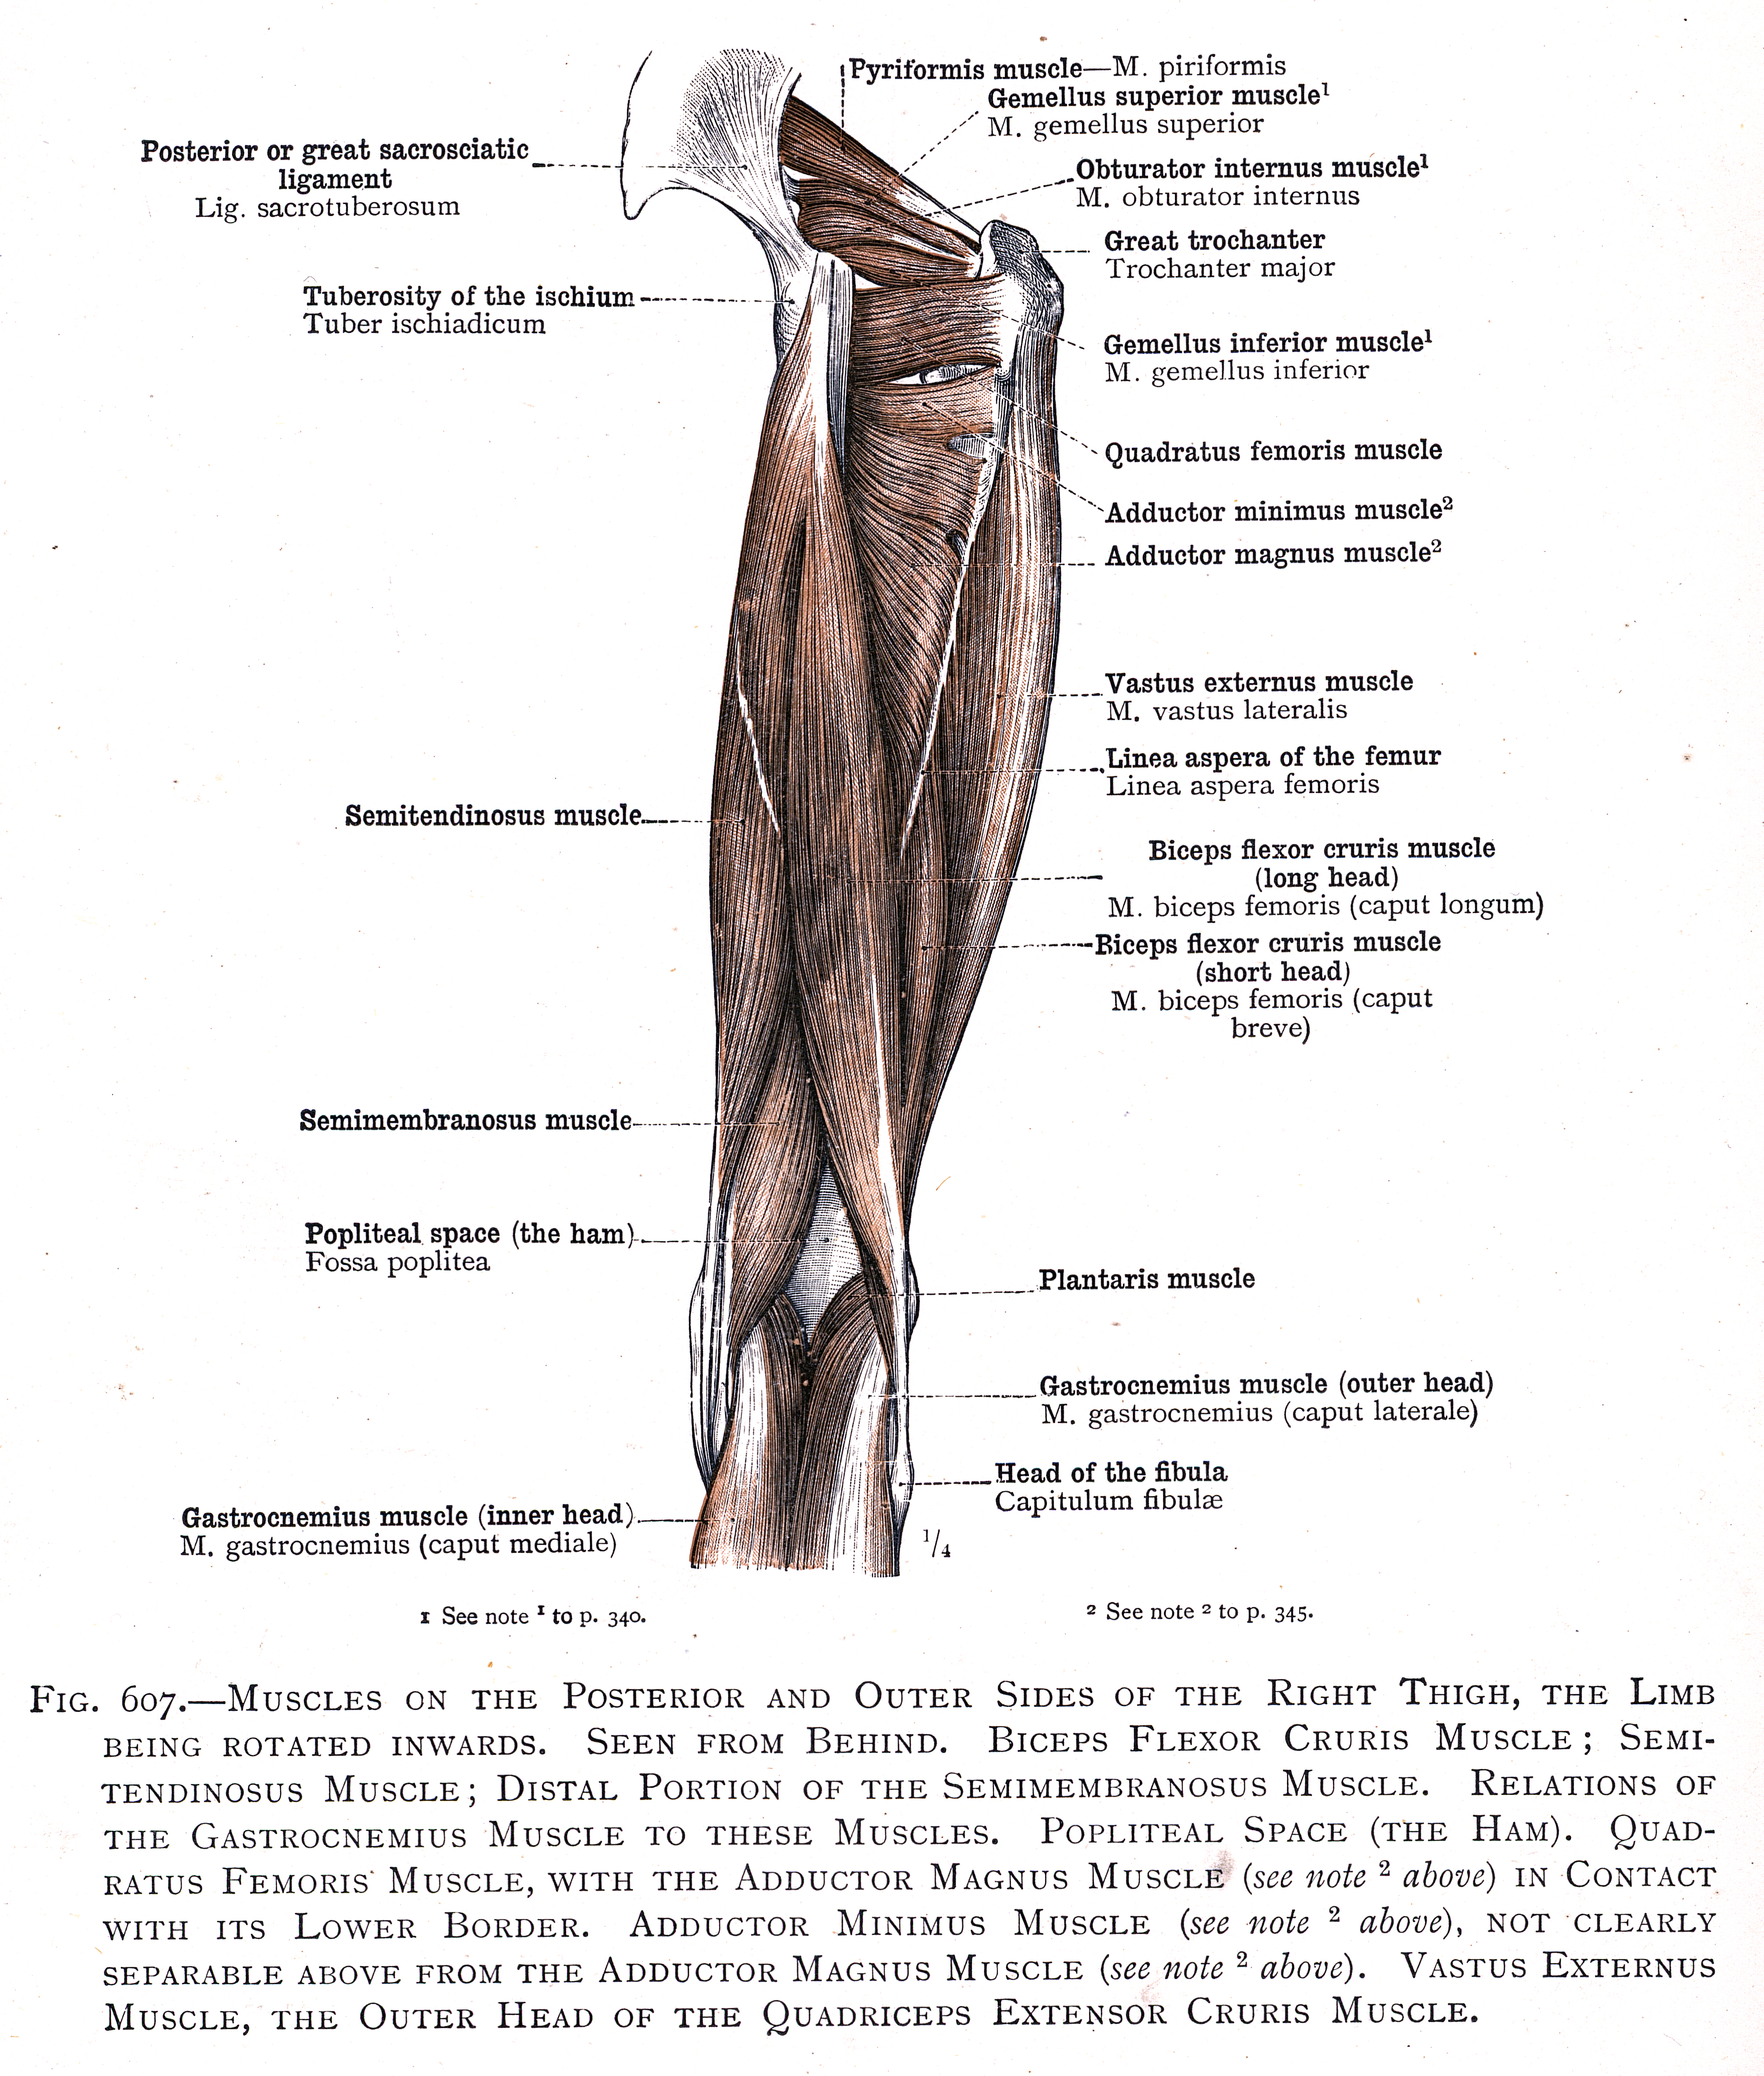 607 Muscles On The Posterior And Outer Sides Of The Right Thigh